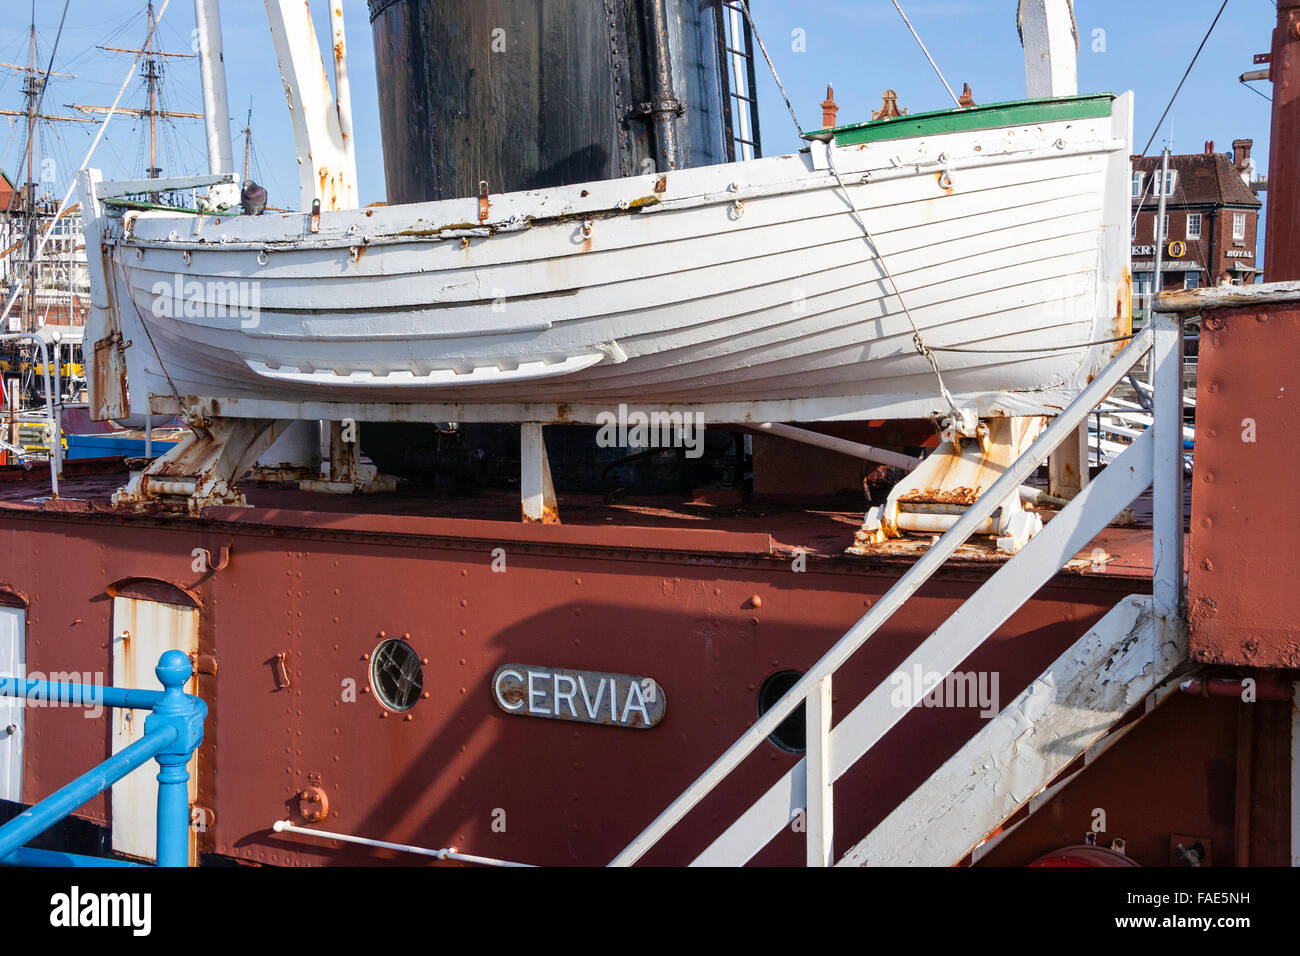 England, Ramsgate. 1946 tug boat, Cervia, formerly known as 'Empire Raymond', moored as floating museum. - Stock Image